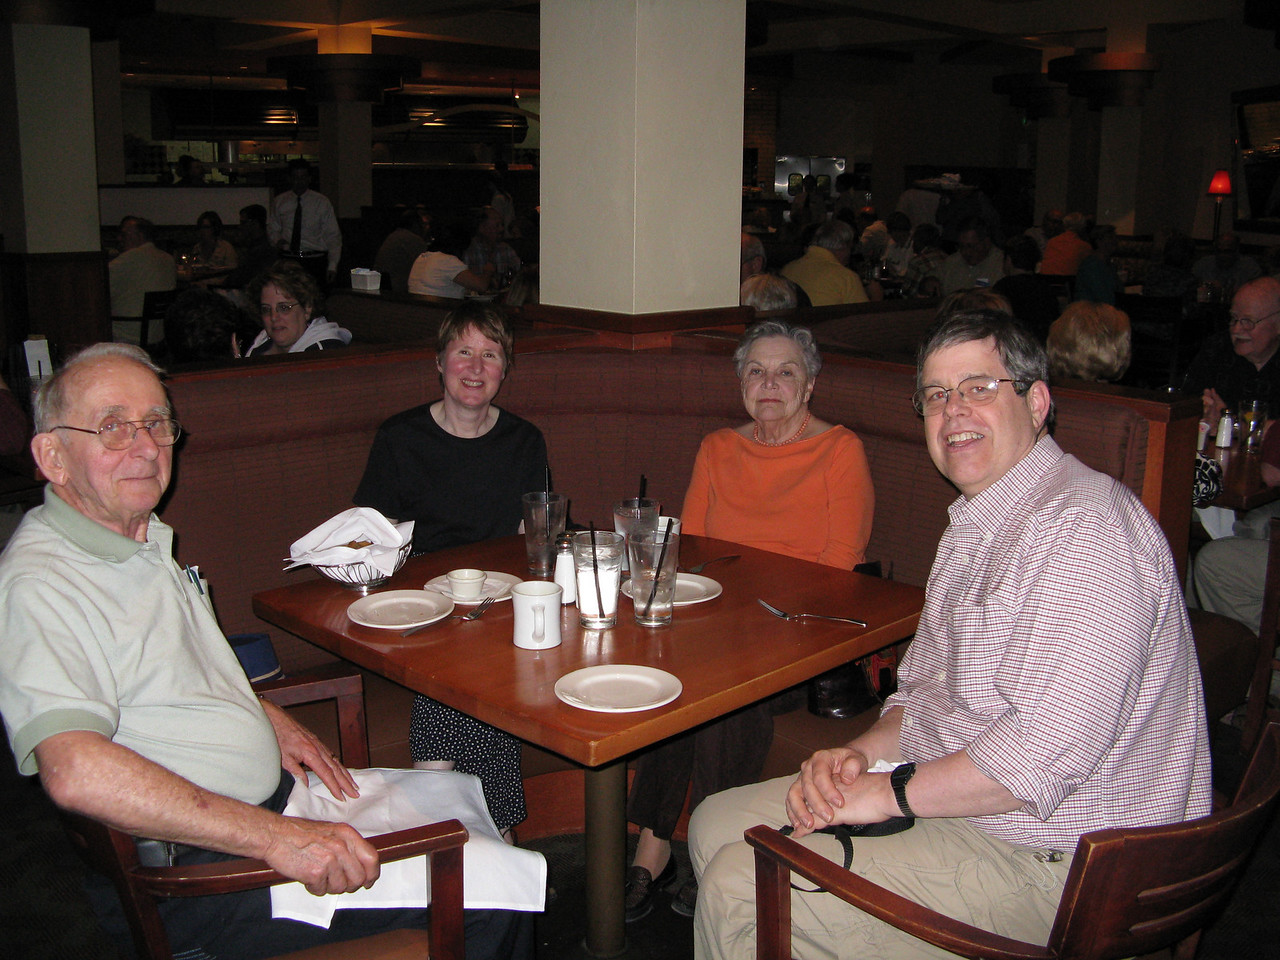 After Martin and Mary arrived on Friday, April 3, we all went out to dinner.  (L to R)  Hal Judd, Mary's dad; Mary; Jean, Mary's step mother; and Martin.